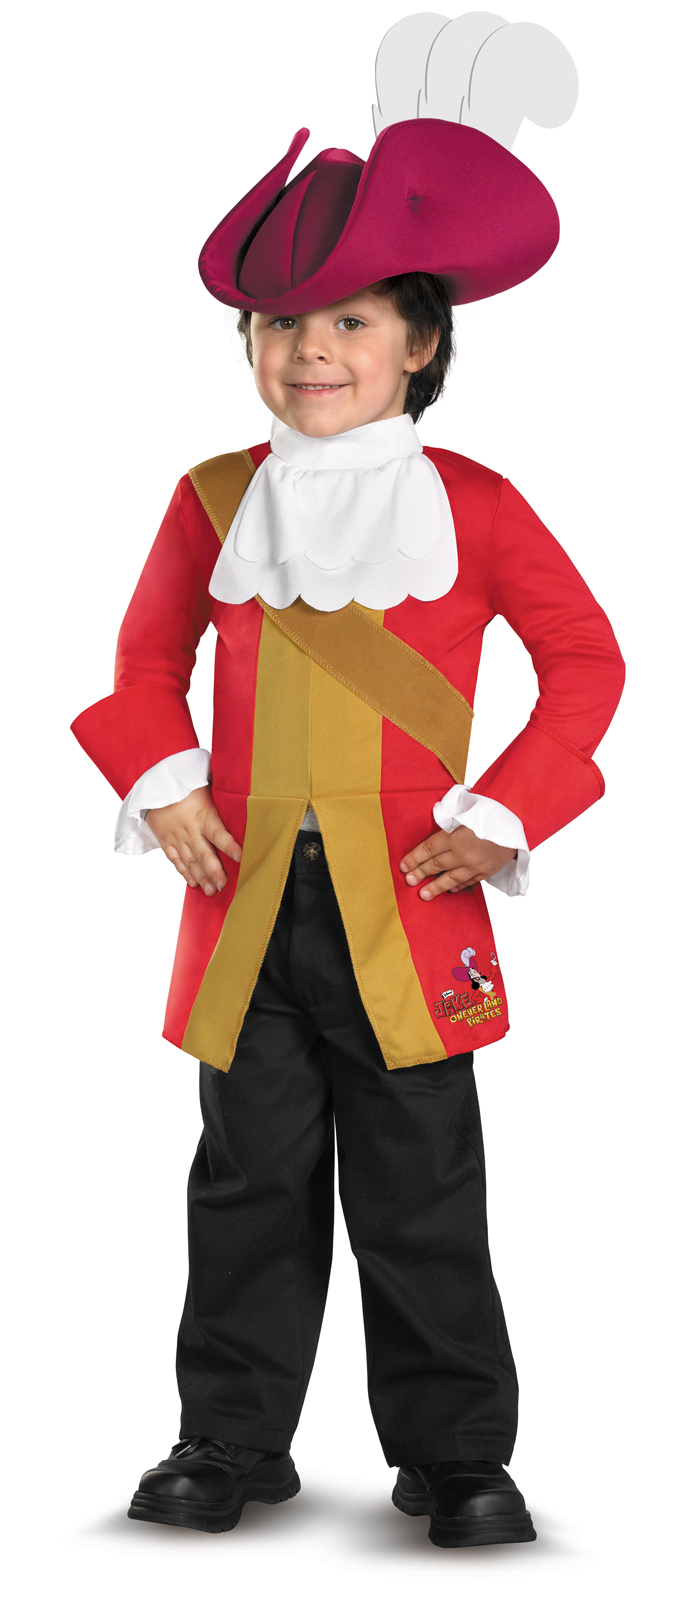 Jake and the Neverland Pirates Costume for Kids and Toddlers